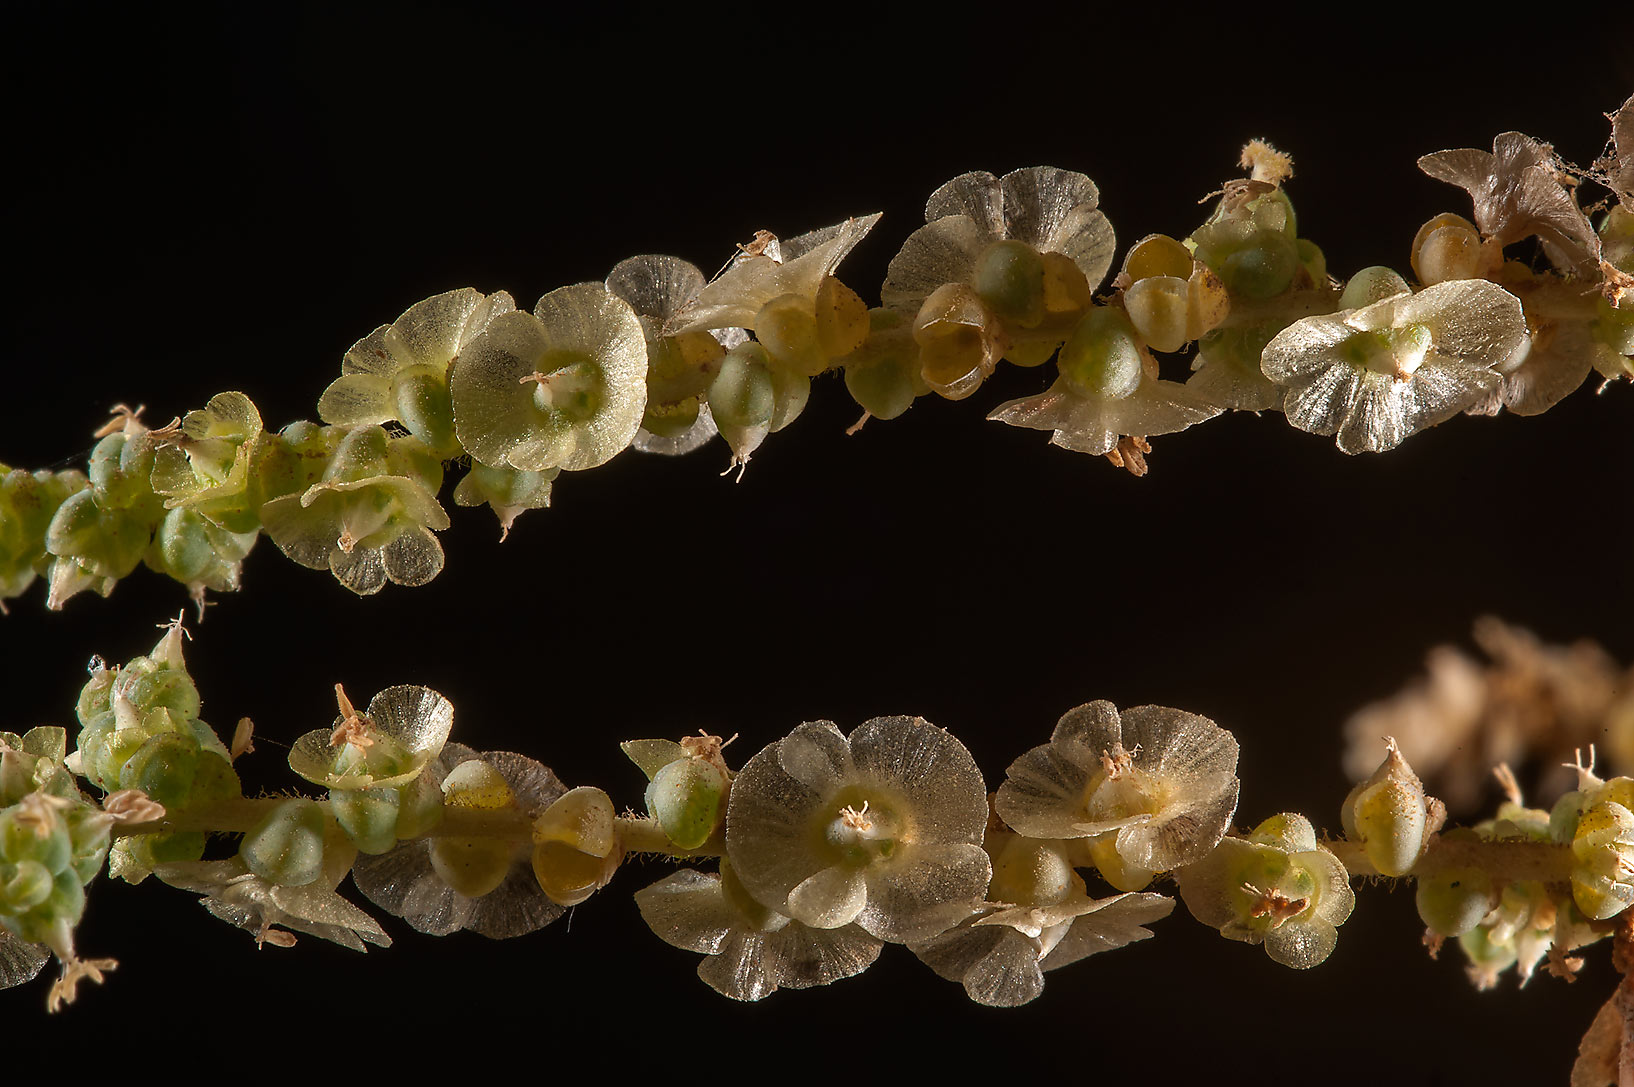 Winged fruits of saltwort (Salsola imbricata) in...of Ras Laffan Farms. Northern Qatar